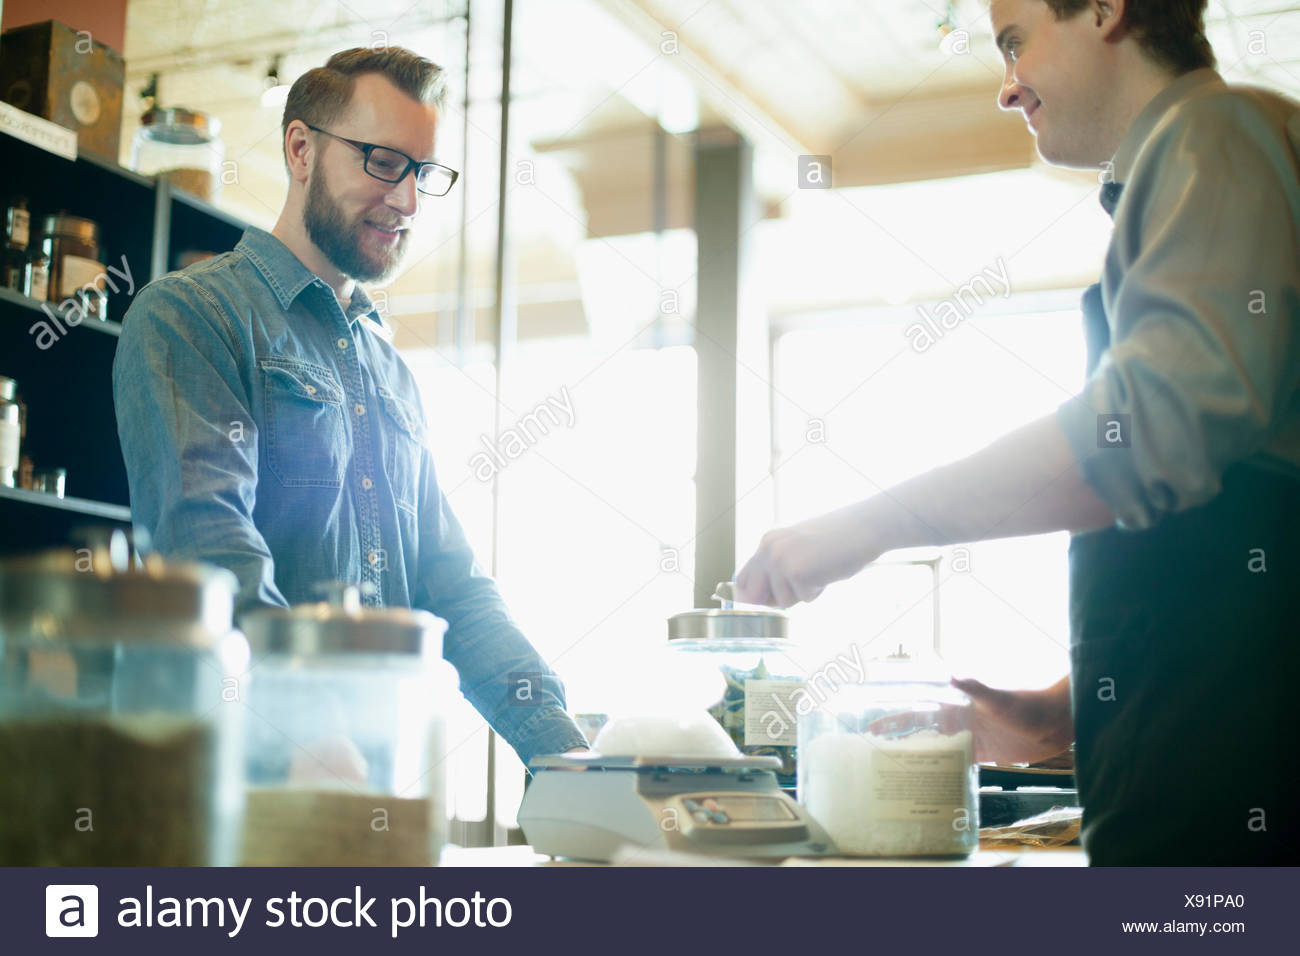 merchant offering product in spice store - Stock Image